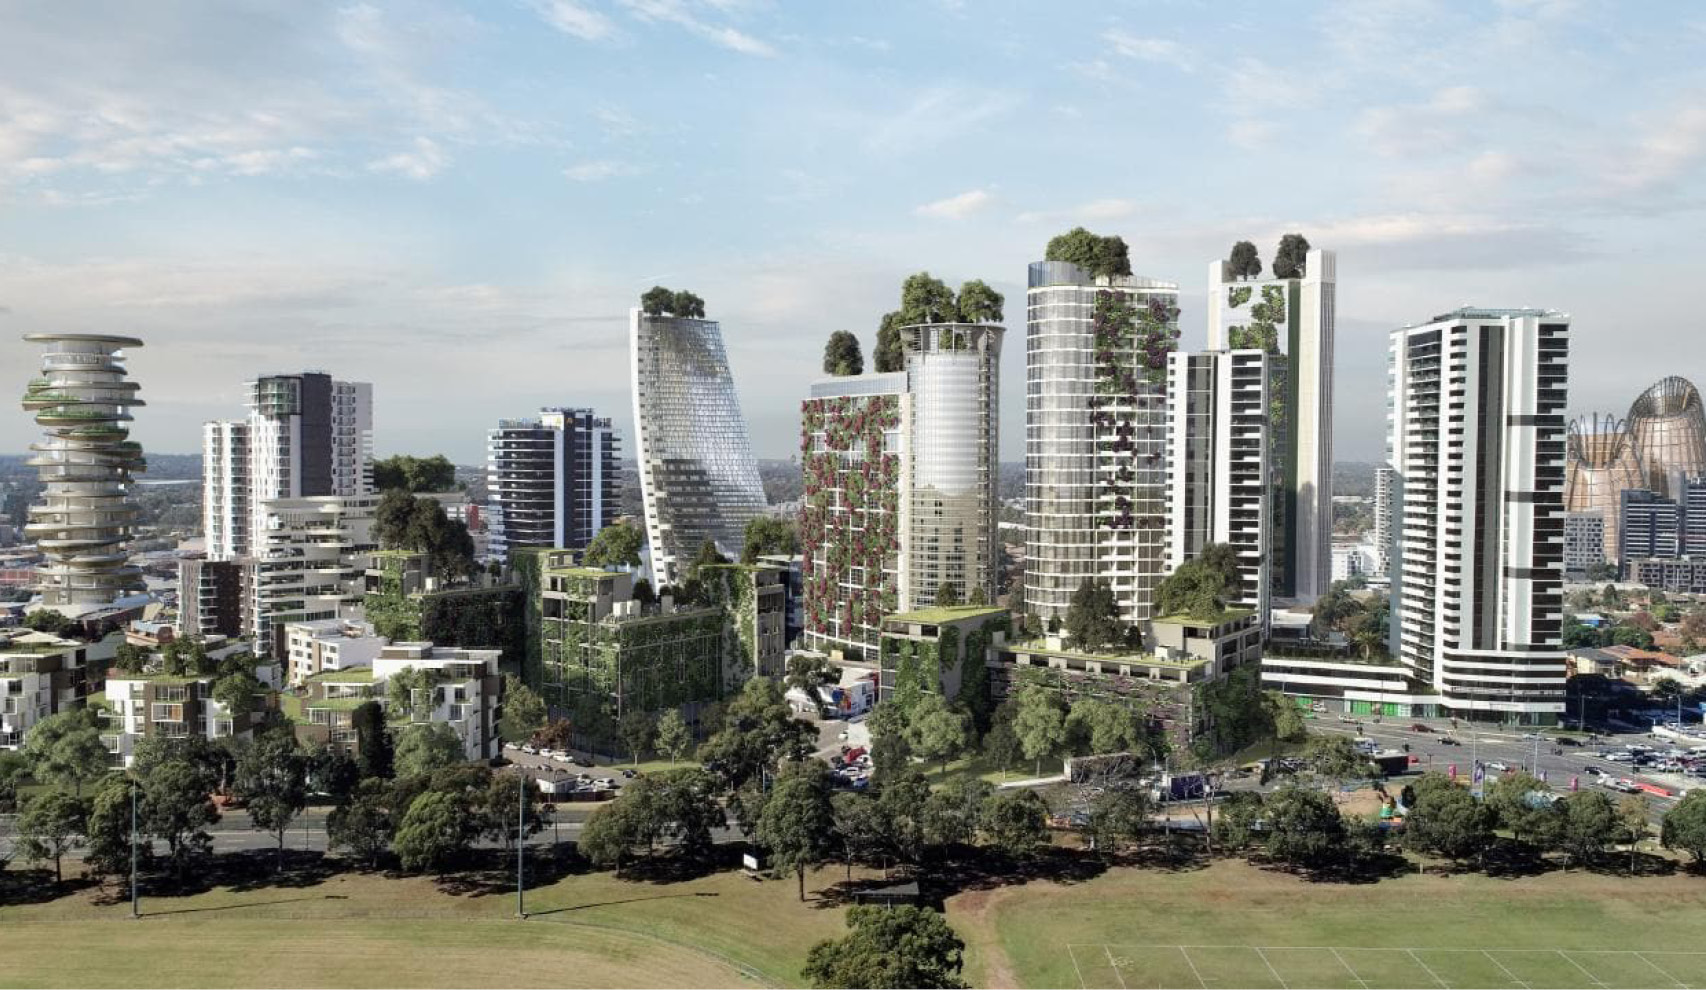 liverpool 2040, liverpool growth, third cbd, liverpool property, liverpool real estate, western sydney growth, property in liverpool, the paper mill, the bindery, the gild, the paper mill food